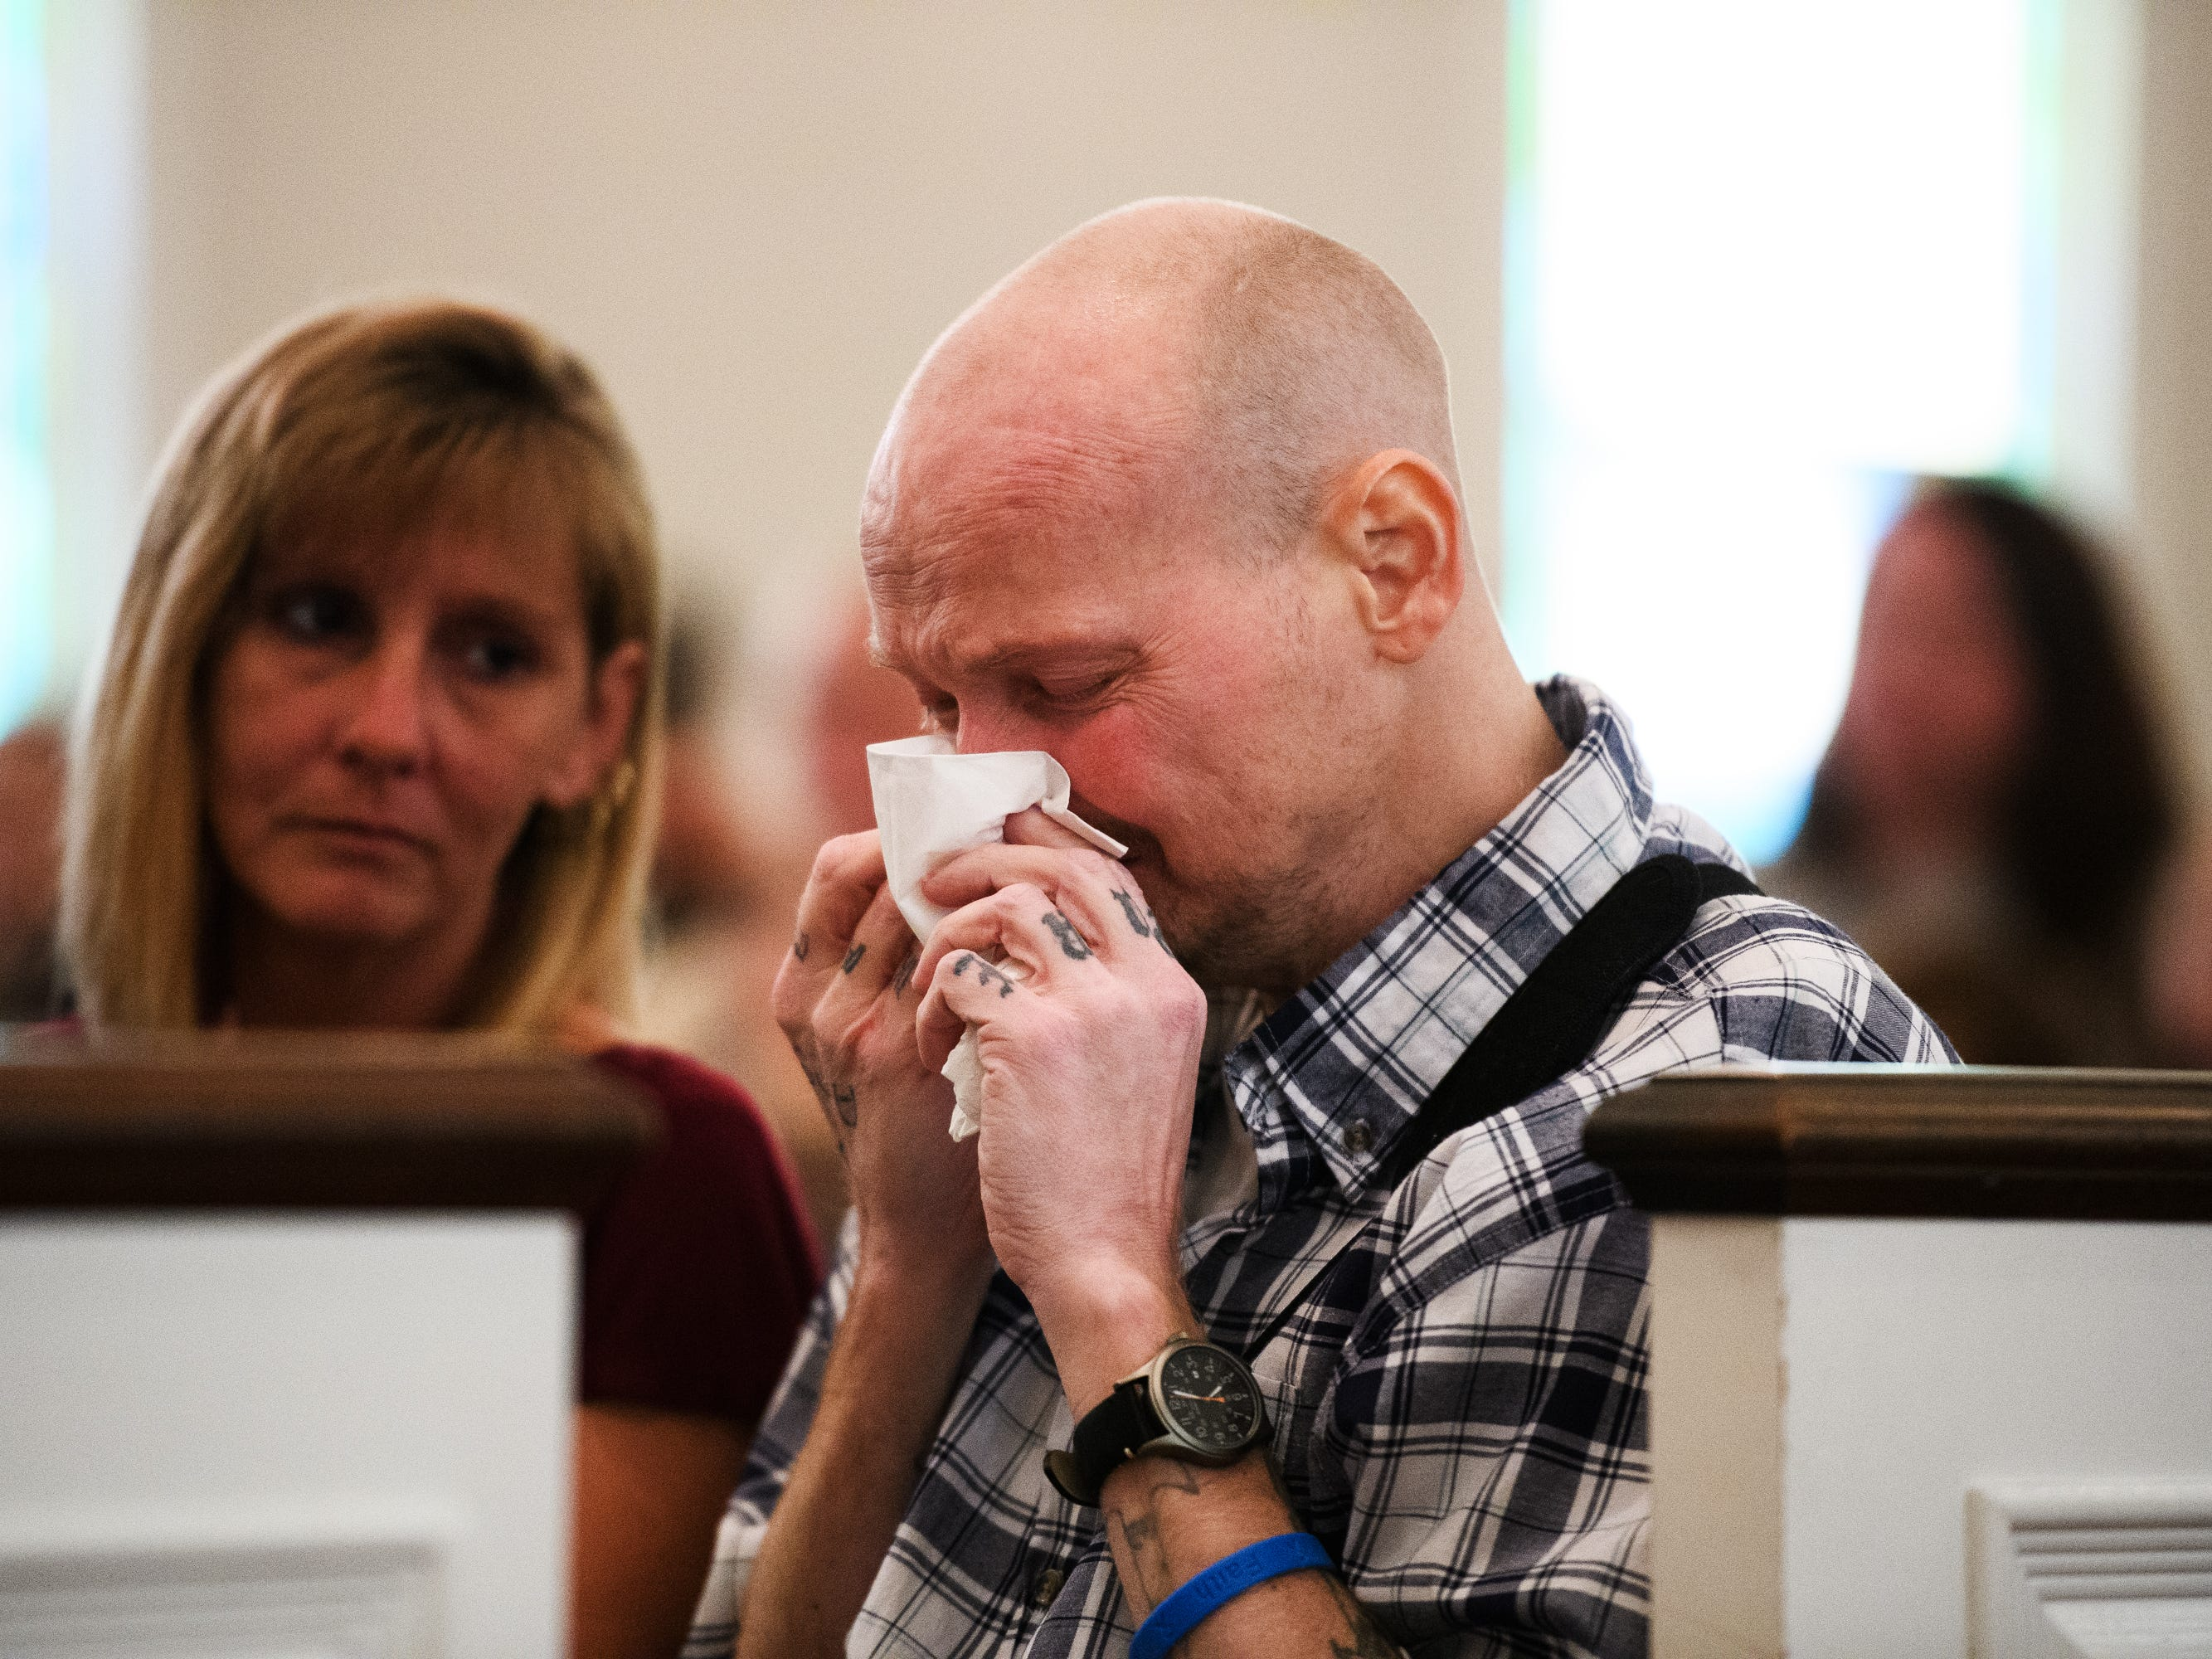 Nicholas Hughes cries as he watches an early graduation ceremony for his son Joshua Lee Vanghn at Pleasant Grove Baptist Church on Tuesday, Oct. 9, 2018.